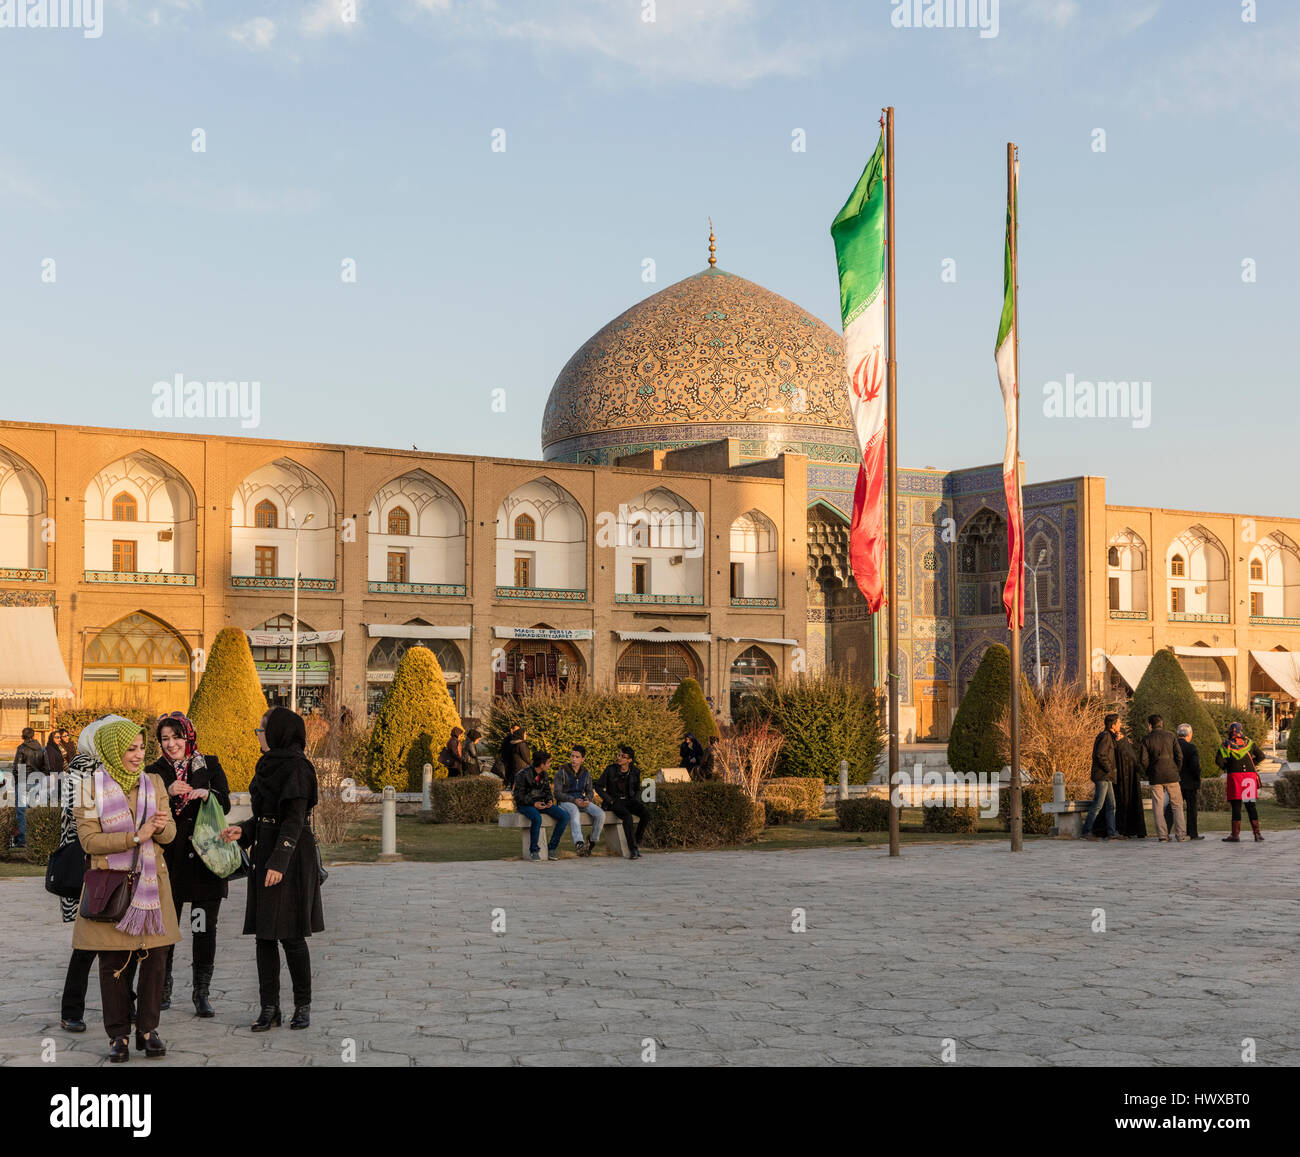 Imam Square in Isfahan with visitors, including families, chador-clad women, and dome of Sheikh Lotfallah Mosque - Stock Image